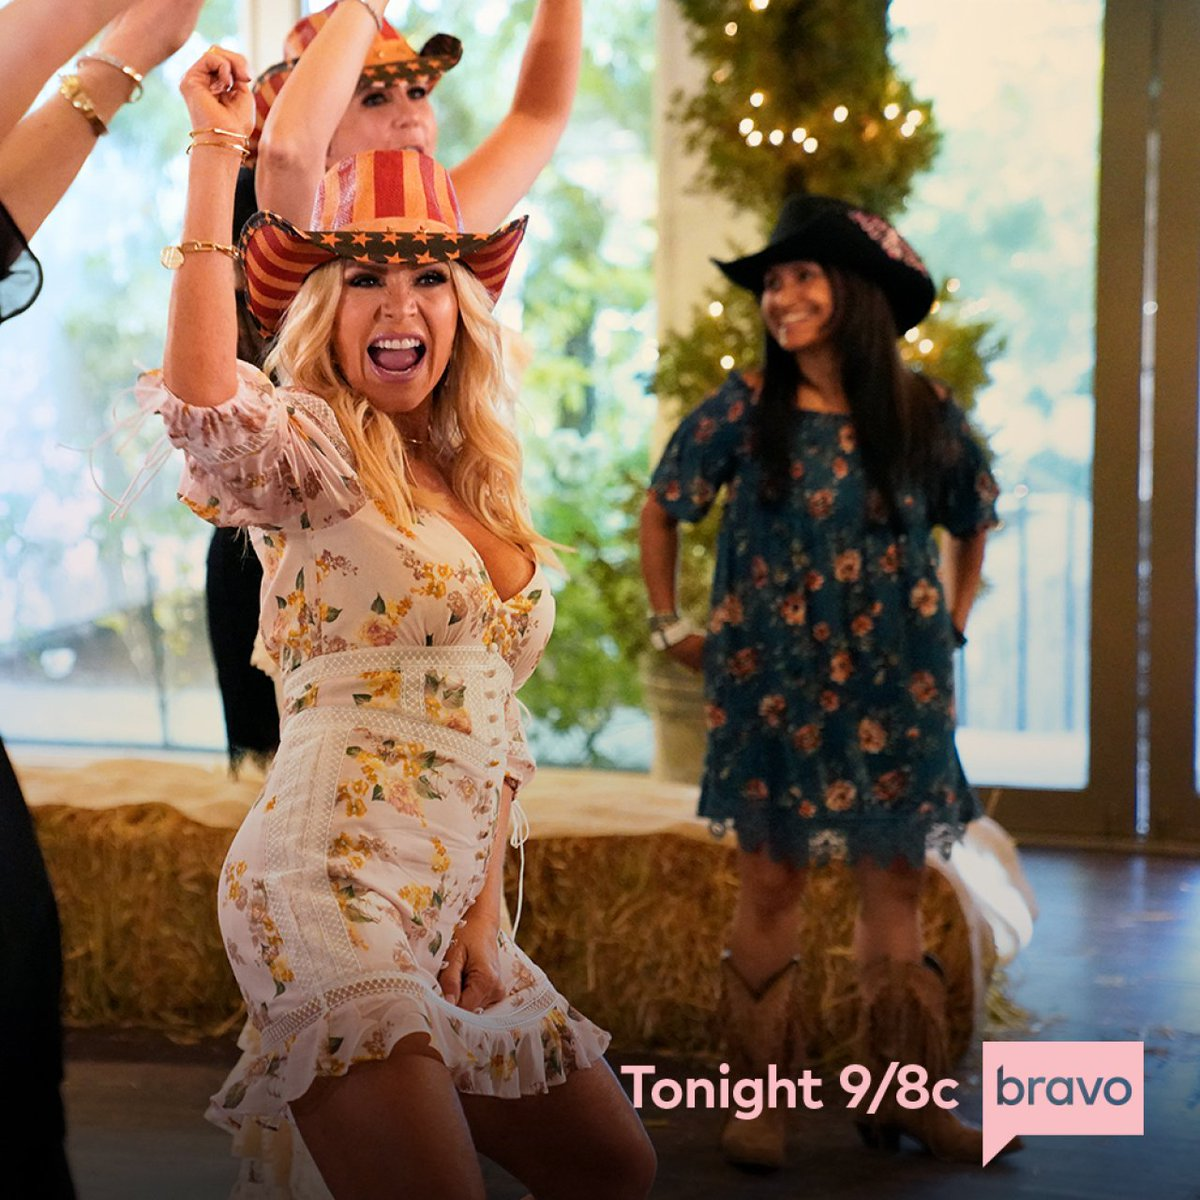 IT'S HERE! Don't miss the Season Premiere of #RHOC tonight at 9/8c on @BravoTV! 🍊